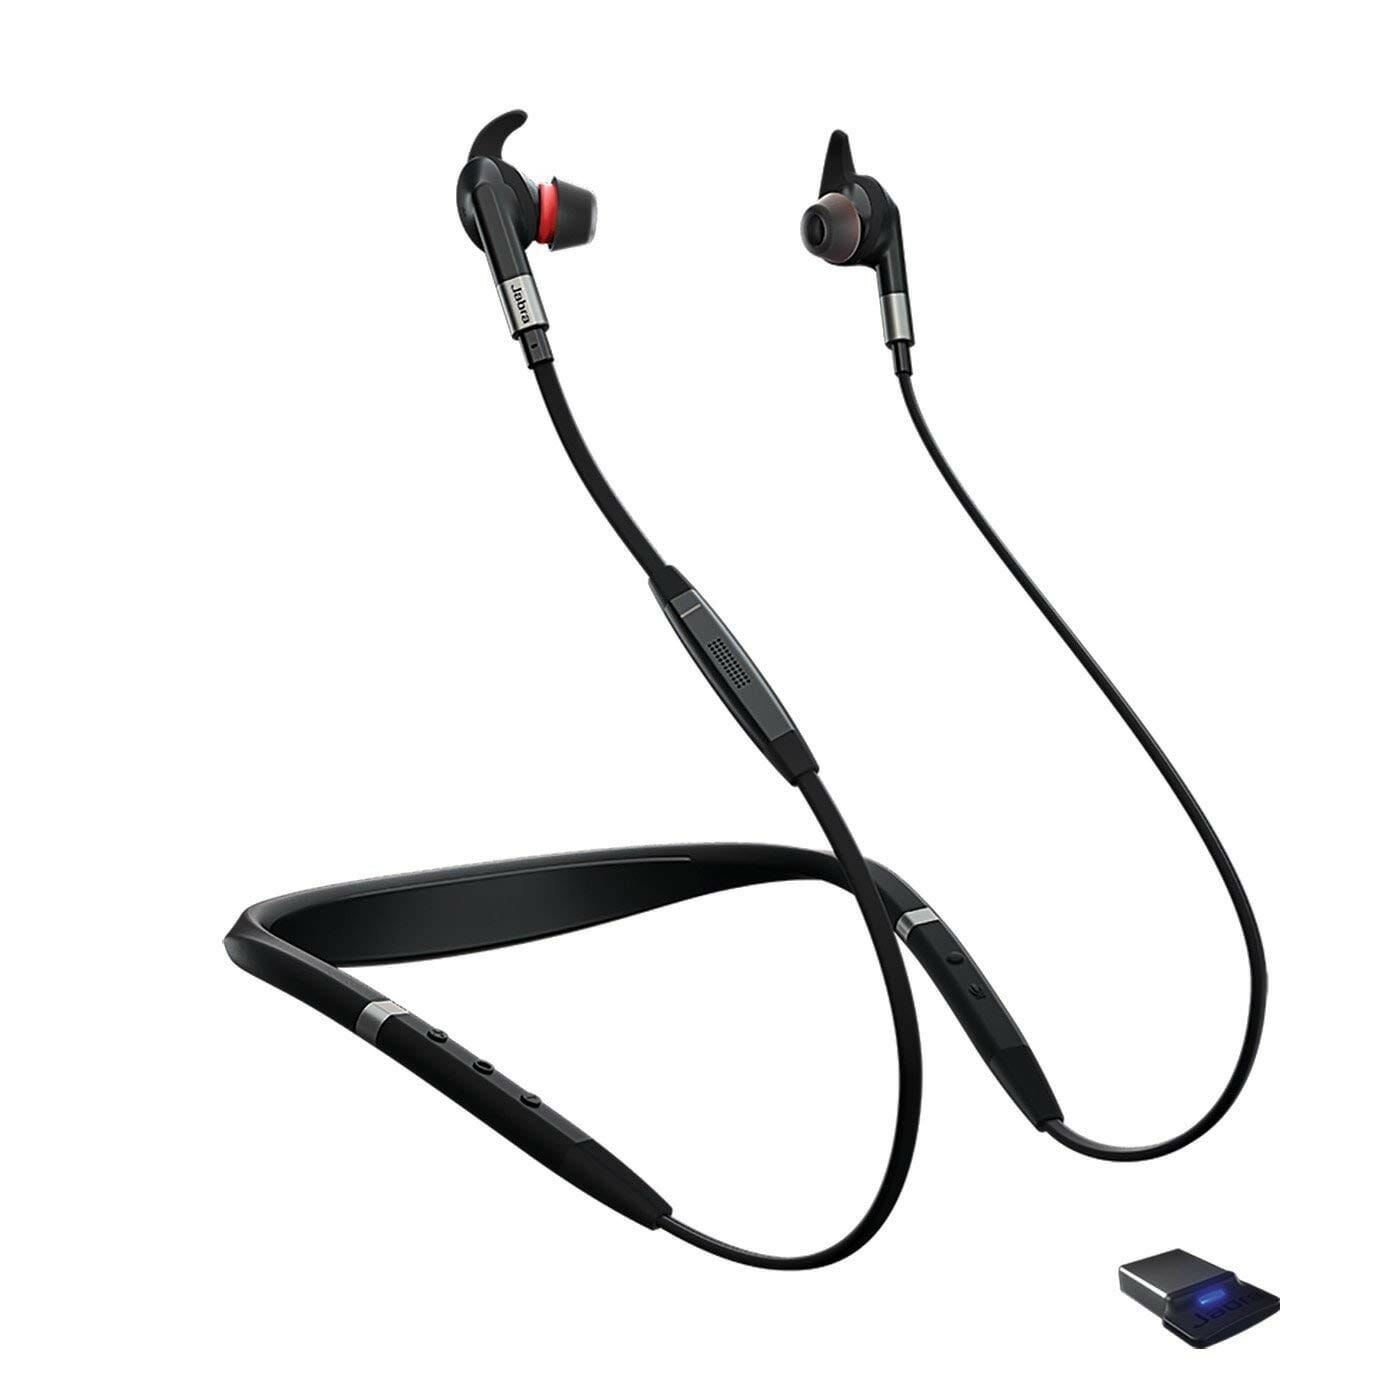 Jabra Evolve 75e with USB Dongle